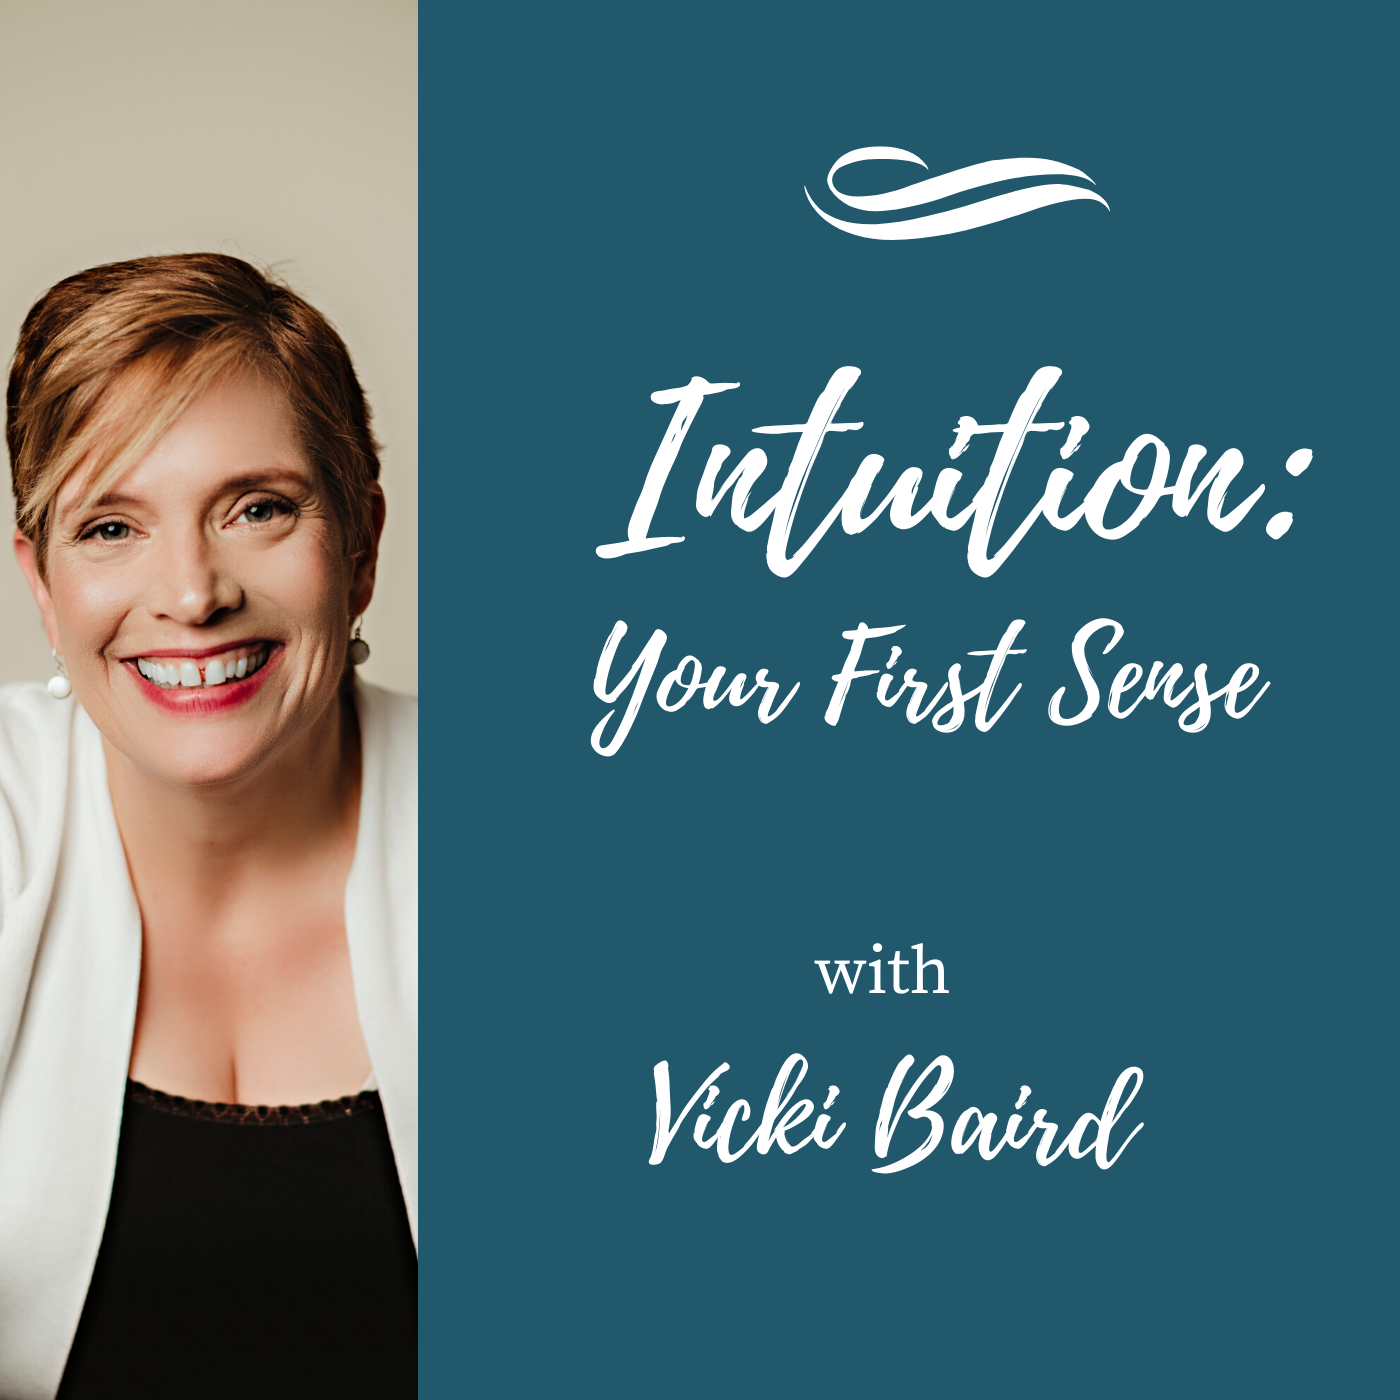 Intuition 101 #4 Spirit Guides